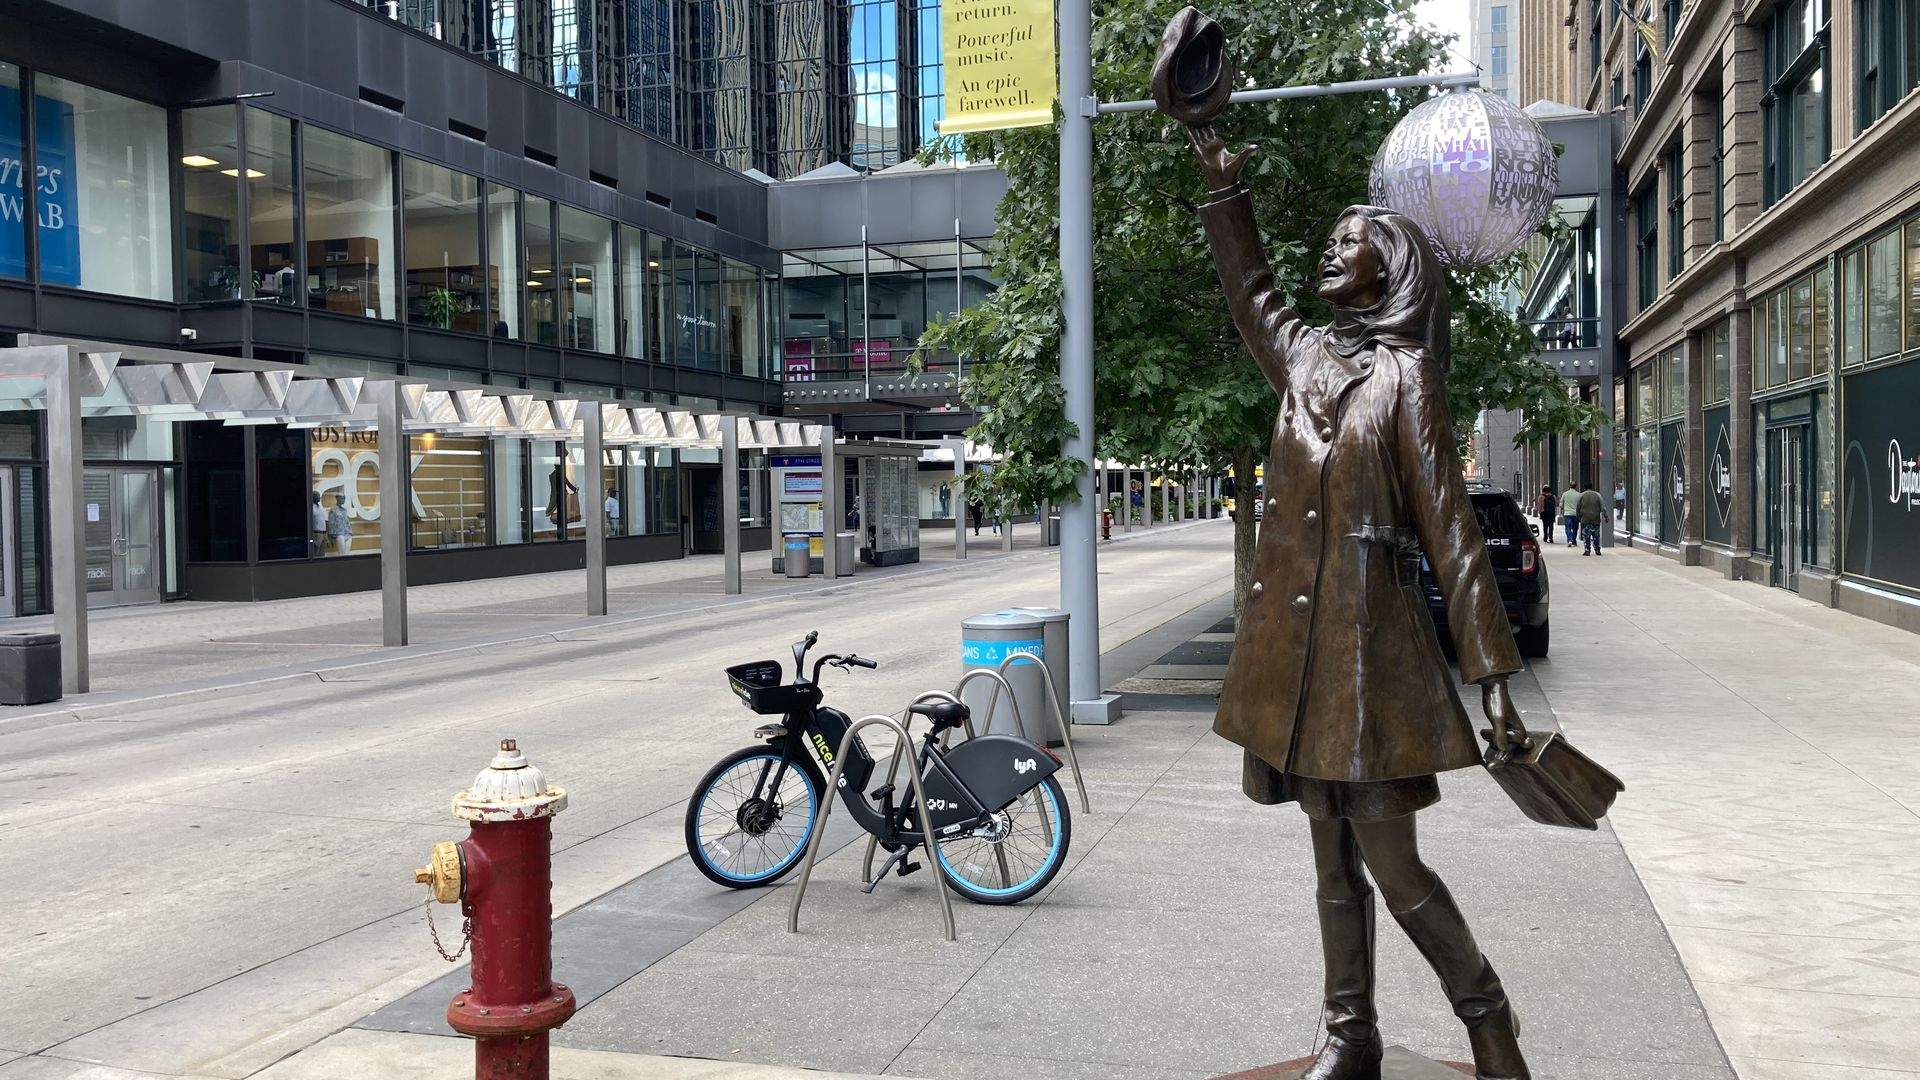 Mary Tyler moore statue, with downtown in the background. Nicollet mall is empty